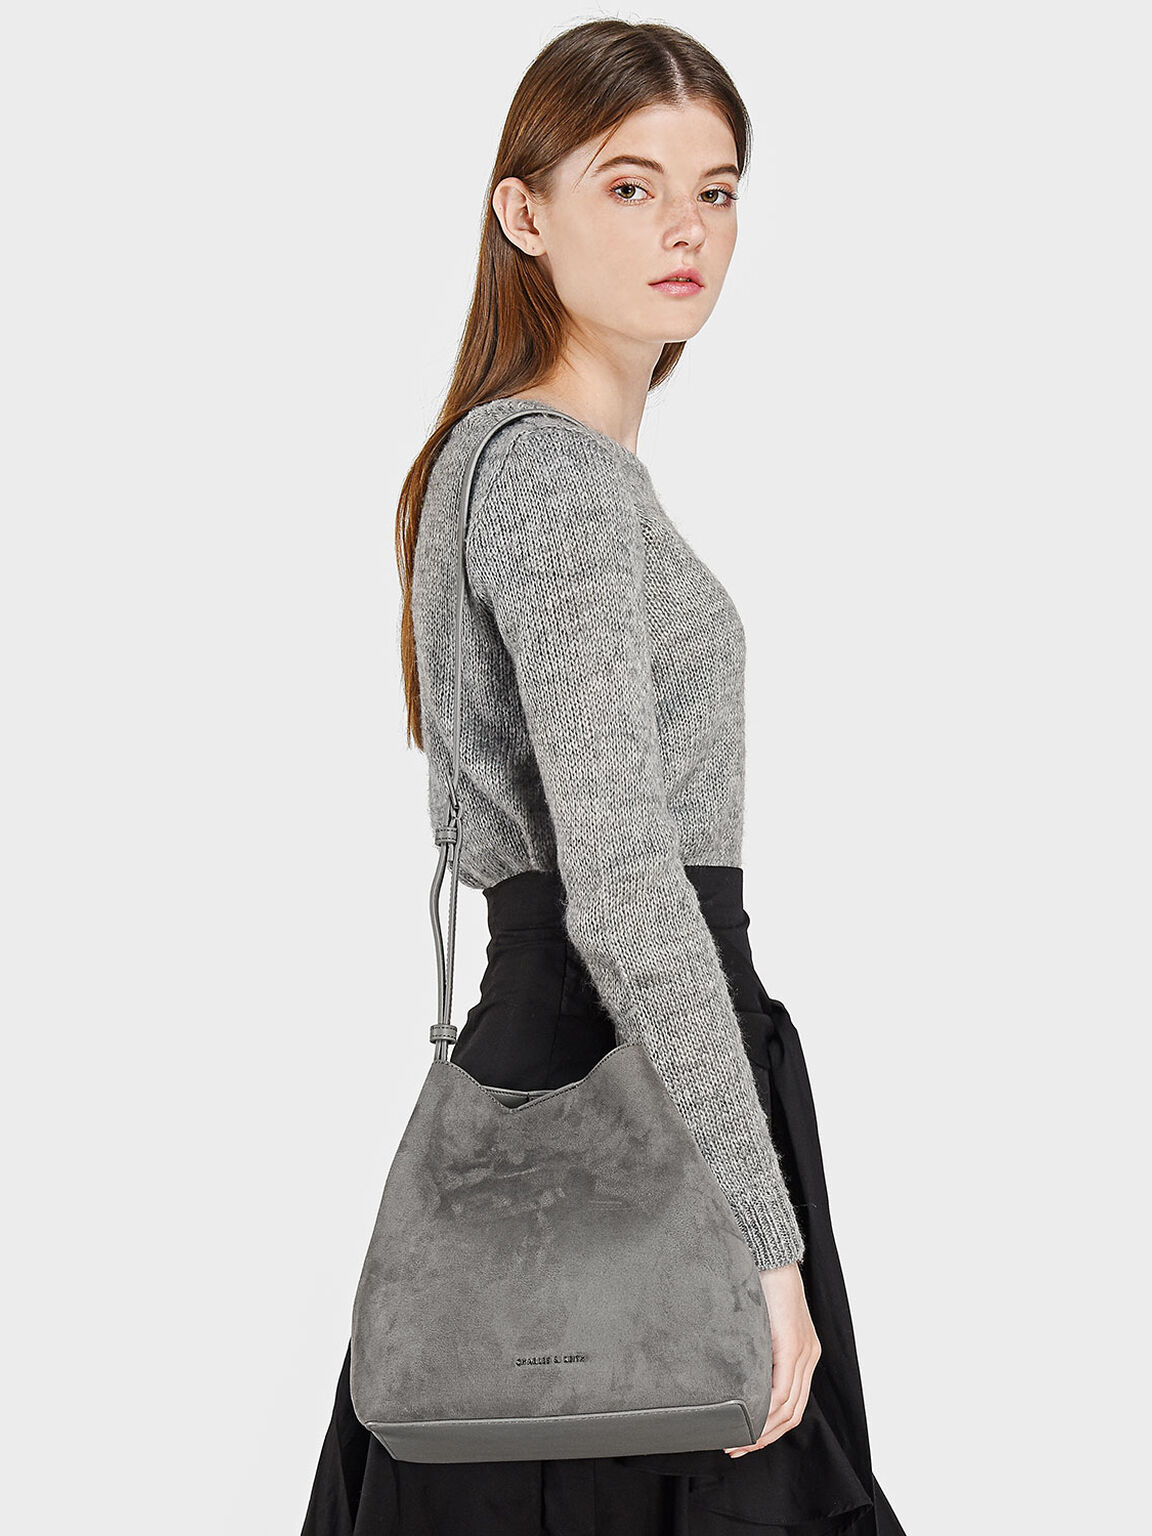 Slouchy Sling Bag, Grey, hi-res